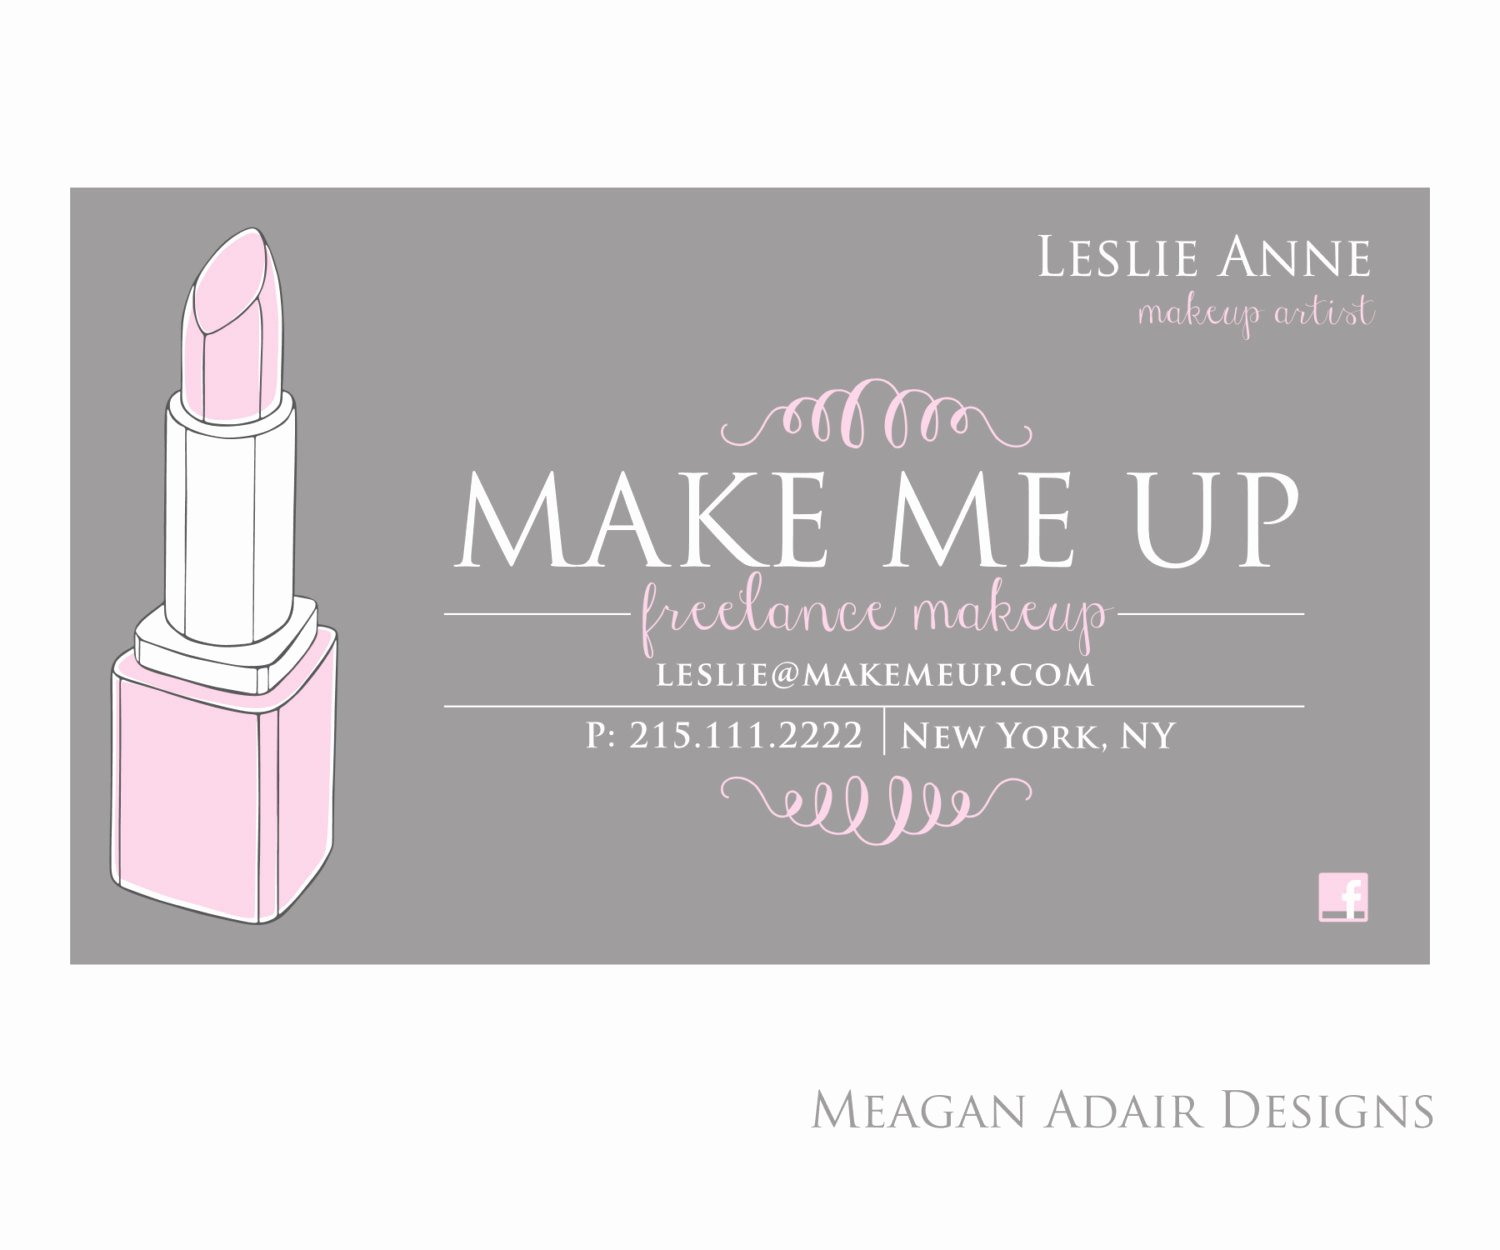 Makeup Artist Business Cards Ideas Inspirational Mary Kay Quotes for Business Cards Quotesgram